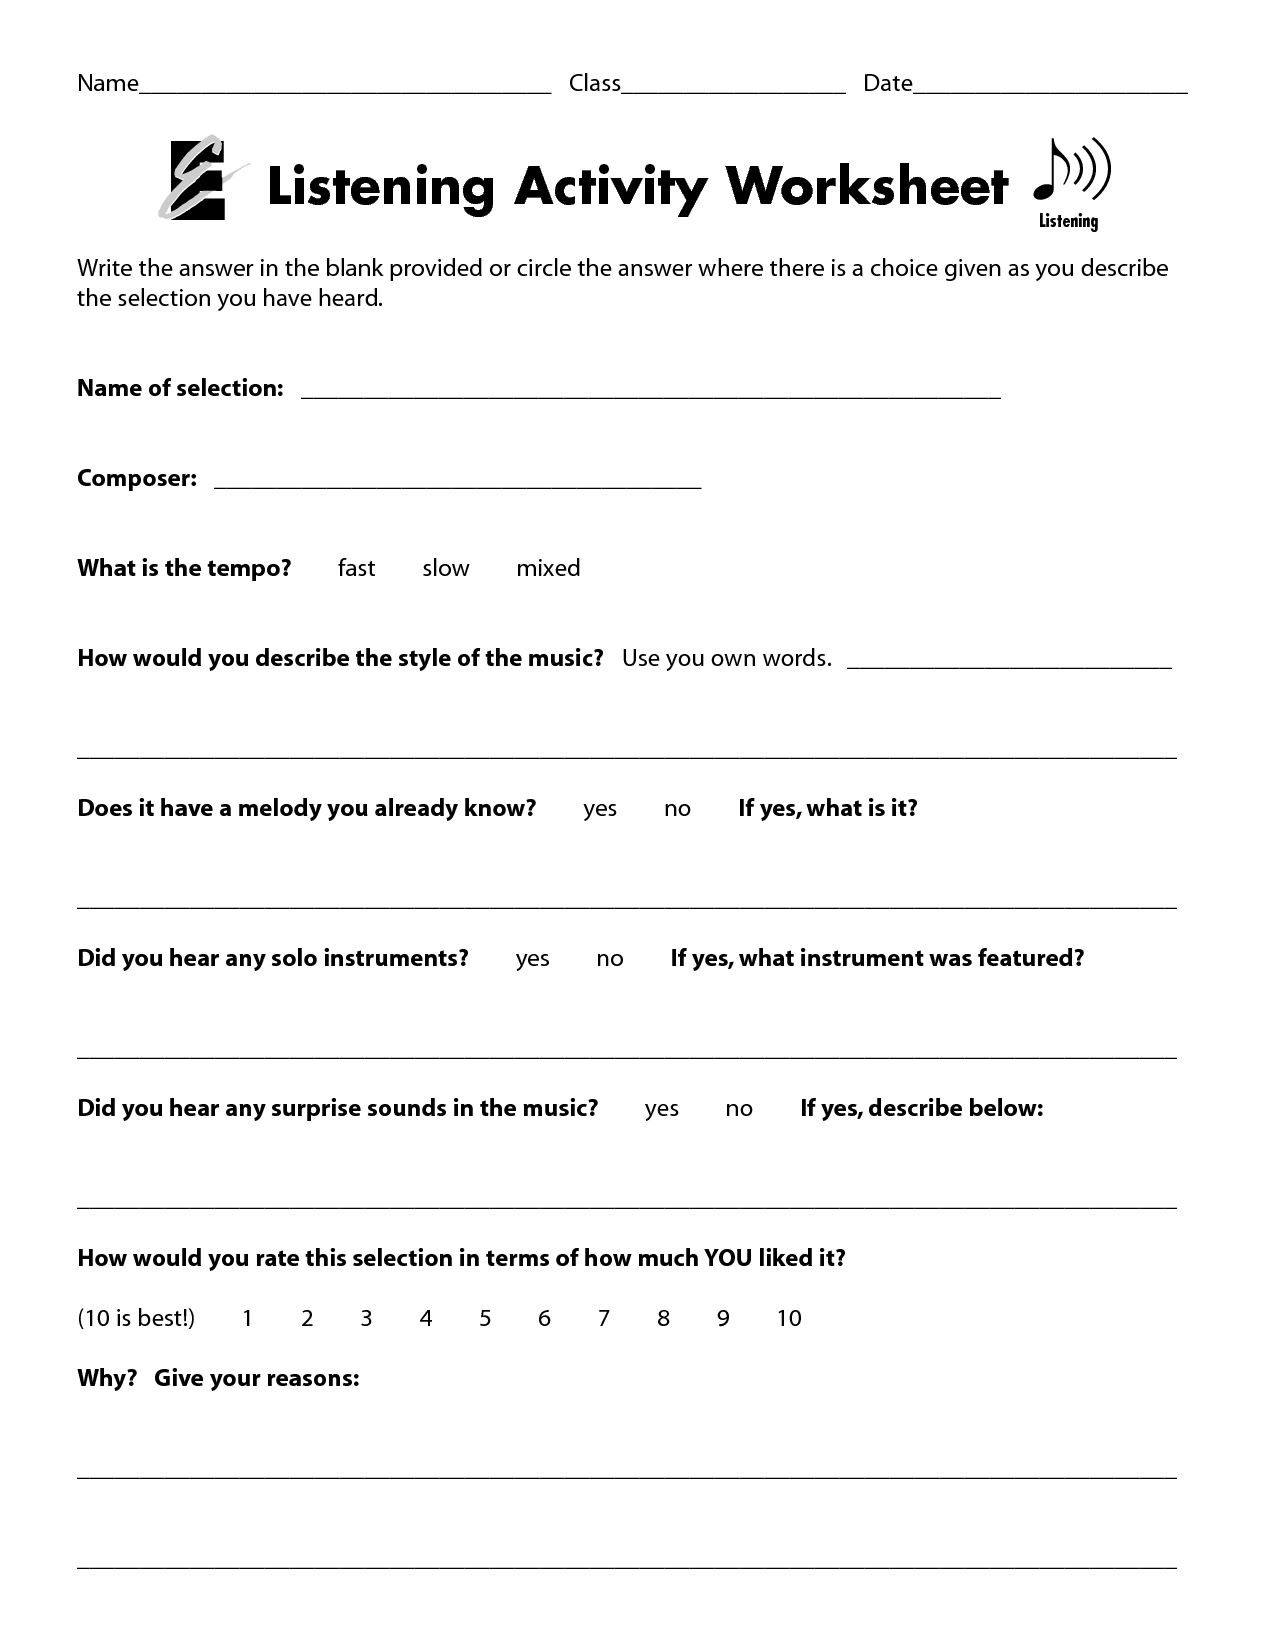 Study Skills Worksheets For Middle School Students